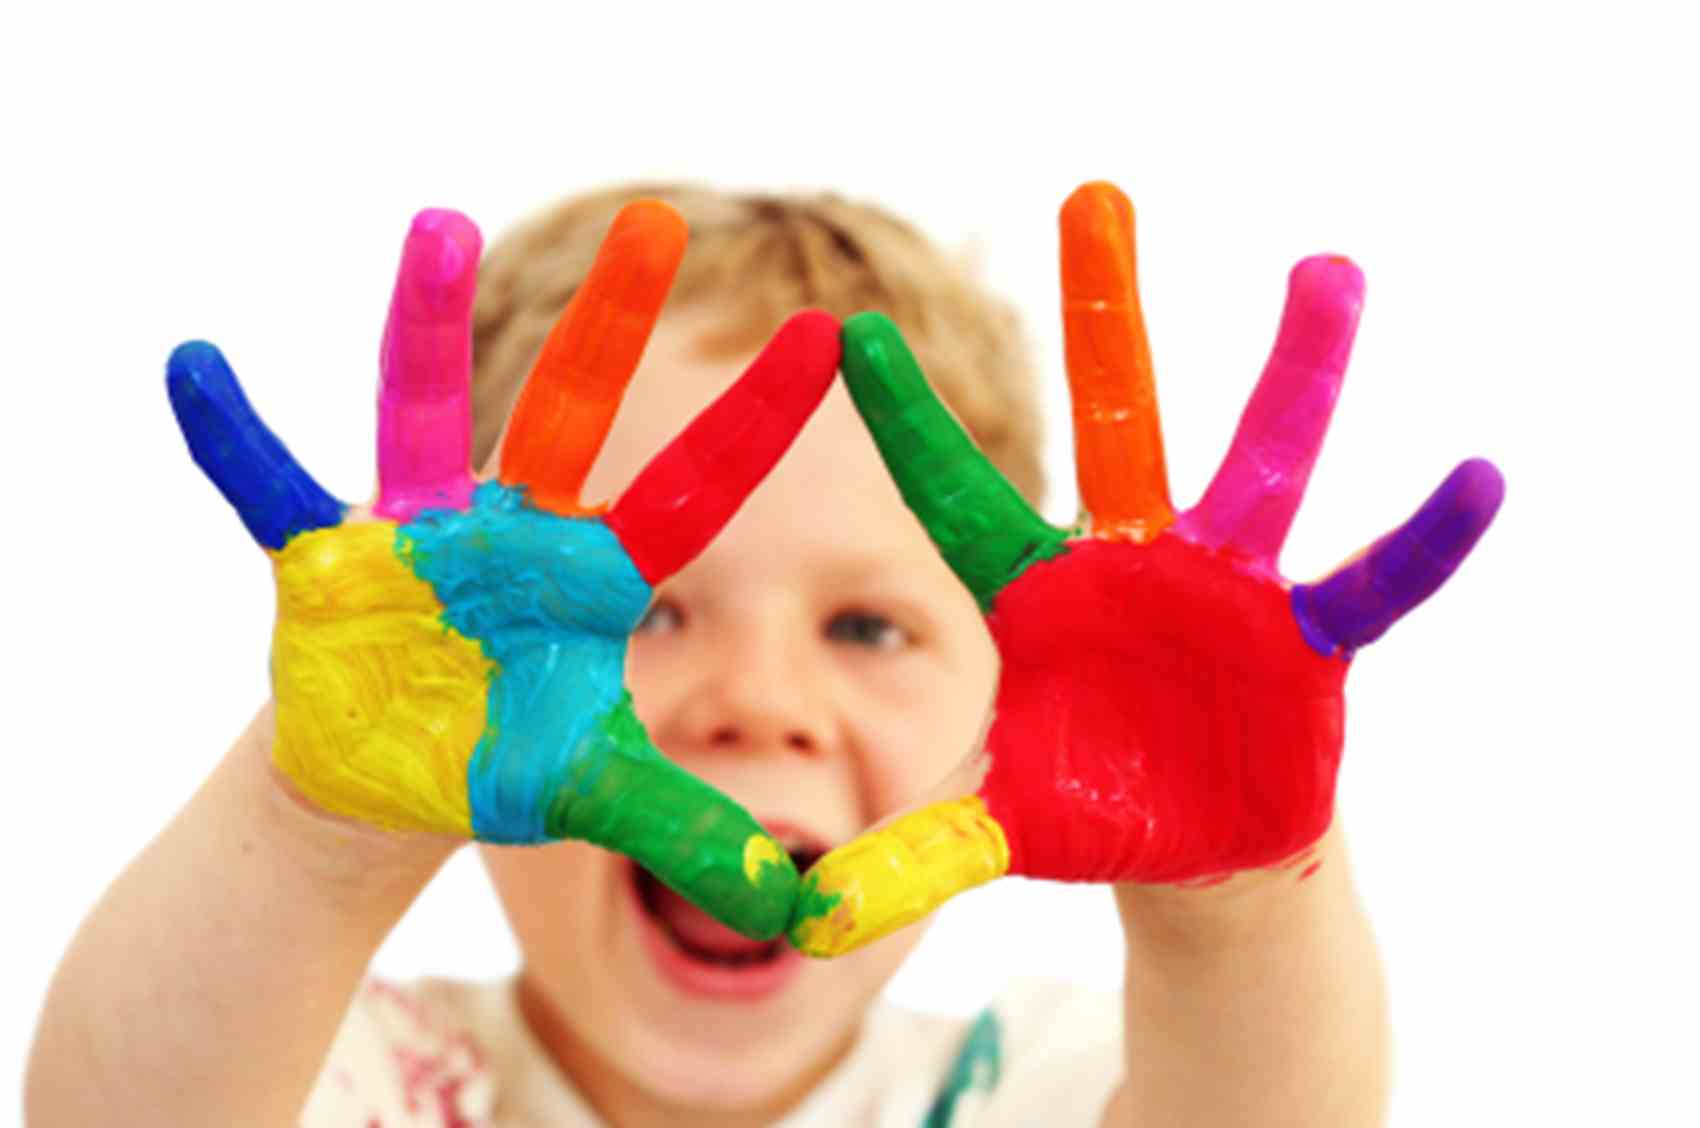 Child painted hands.jpg